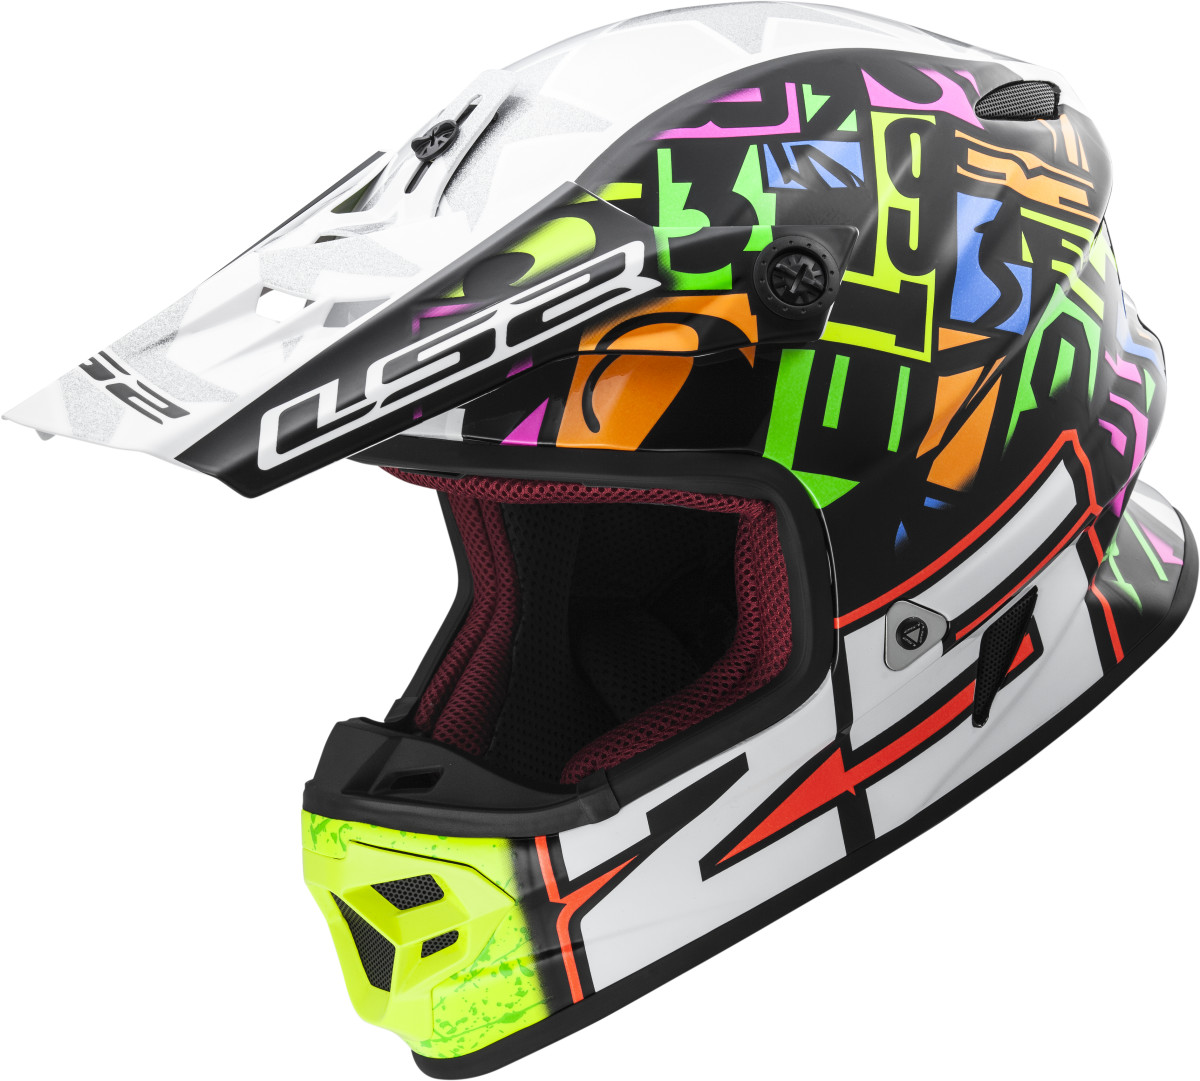 LS2 HELMETS a The Wall Extreme Enduro Race